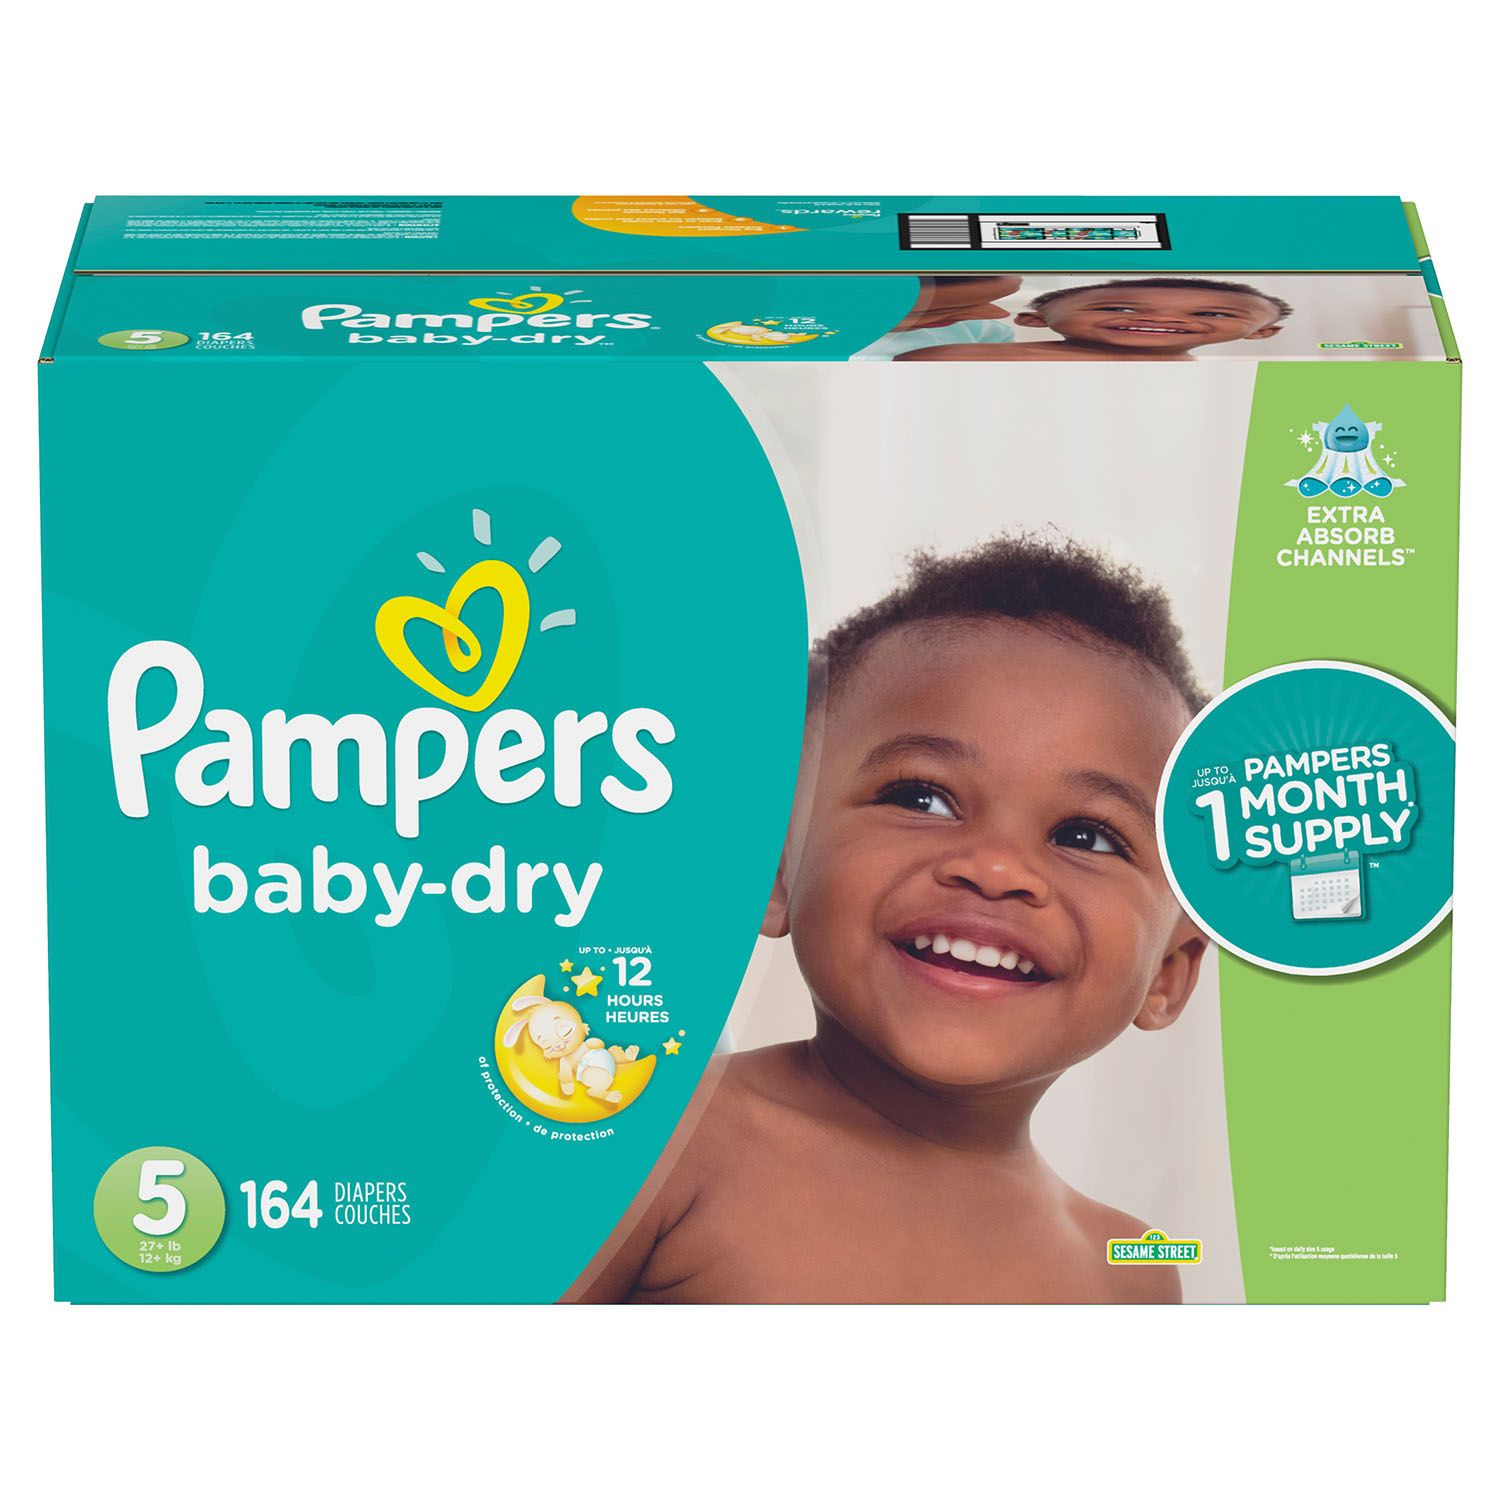 Pampers Baby-Dry Disposable Diapers Size 5, 164 Count, ECONOMY PACK PLUS by Discount Market Place